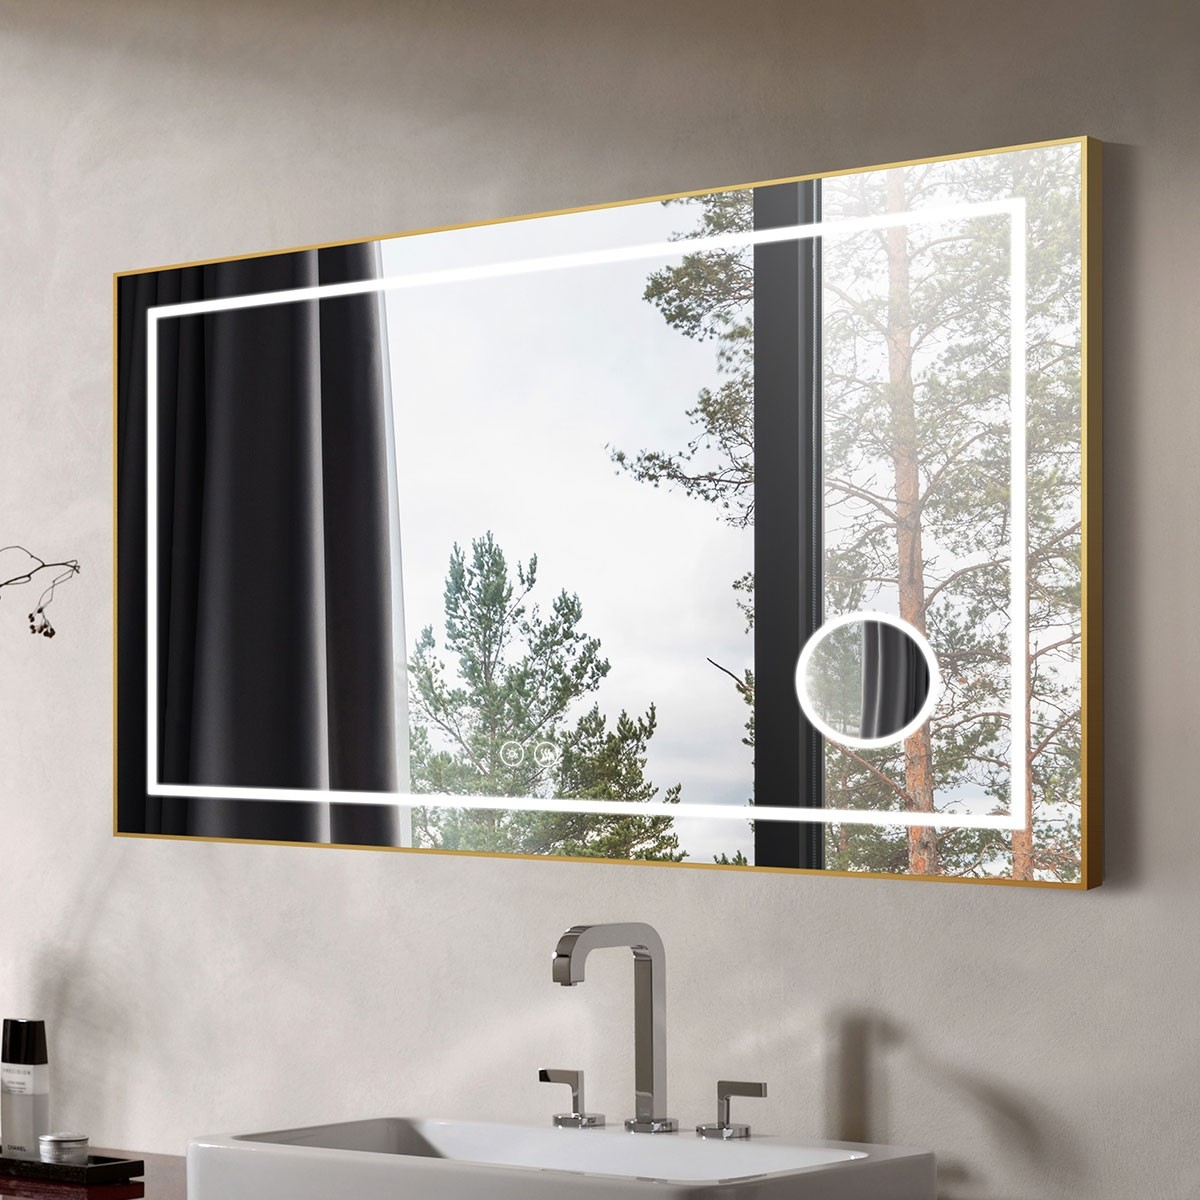 DECORAPORT 55 x 36 Inch LED Bathroom Mirror with Touch Button, Light Luxury Gold, Anti Fog, Dimmable, Bluetooth Speakers, Magnifier, Vertical & Horizontal Mount (D721-5536AC)